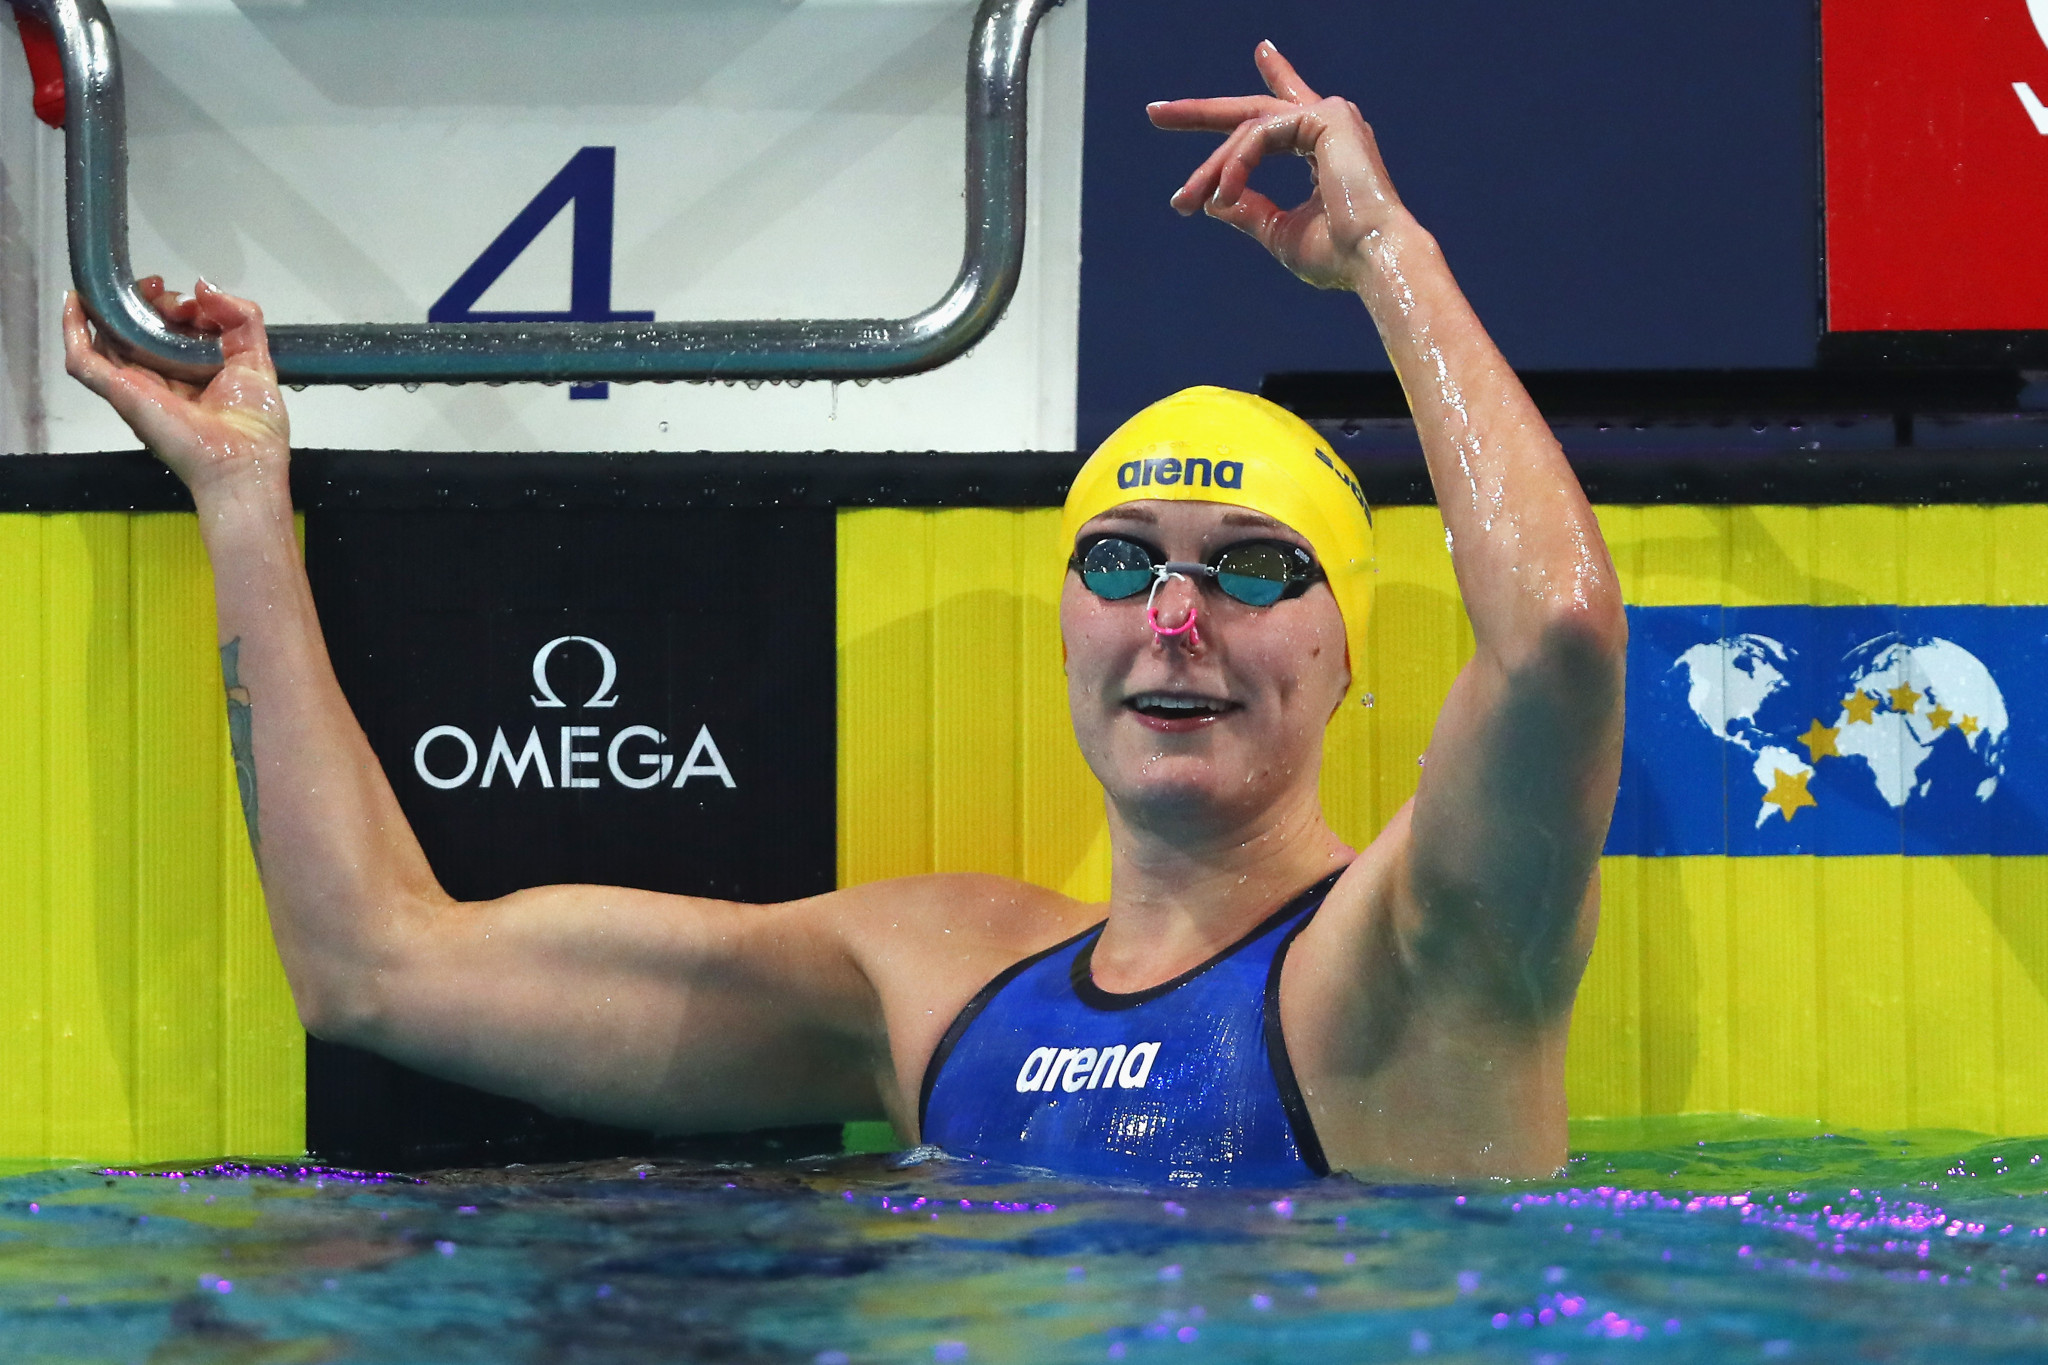 Another record breaking performance from Sjostrom at Eindhoven FINA World Cup